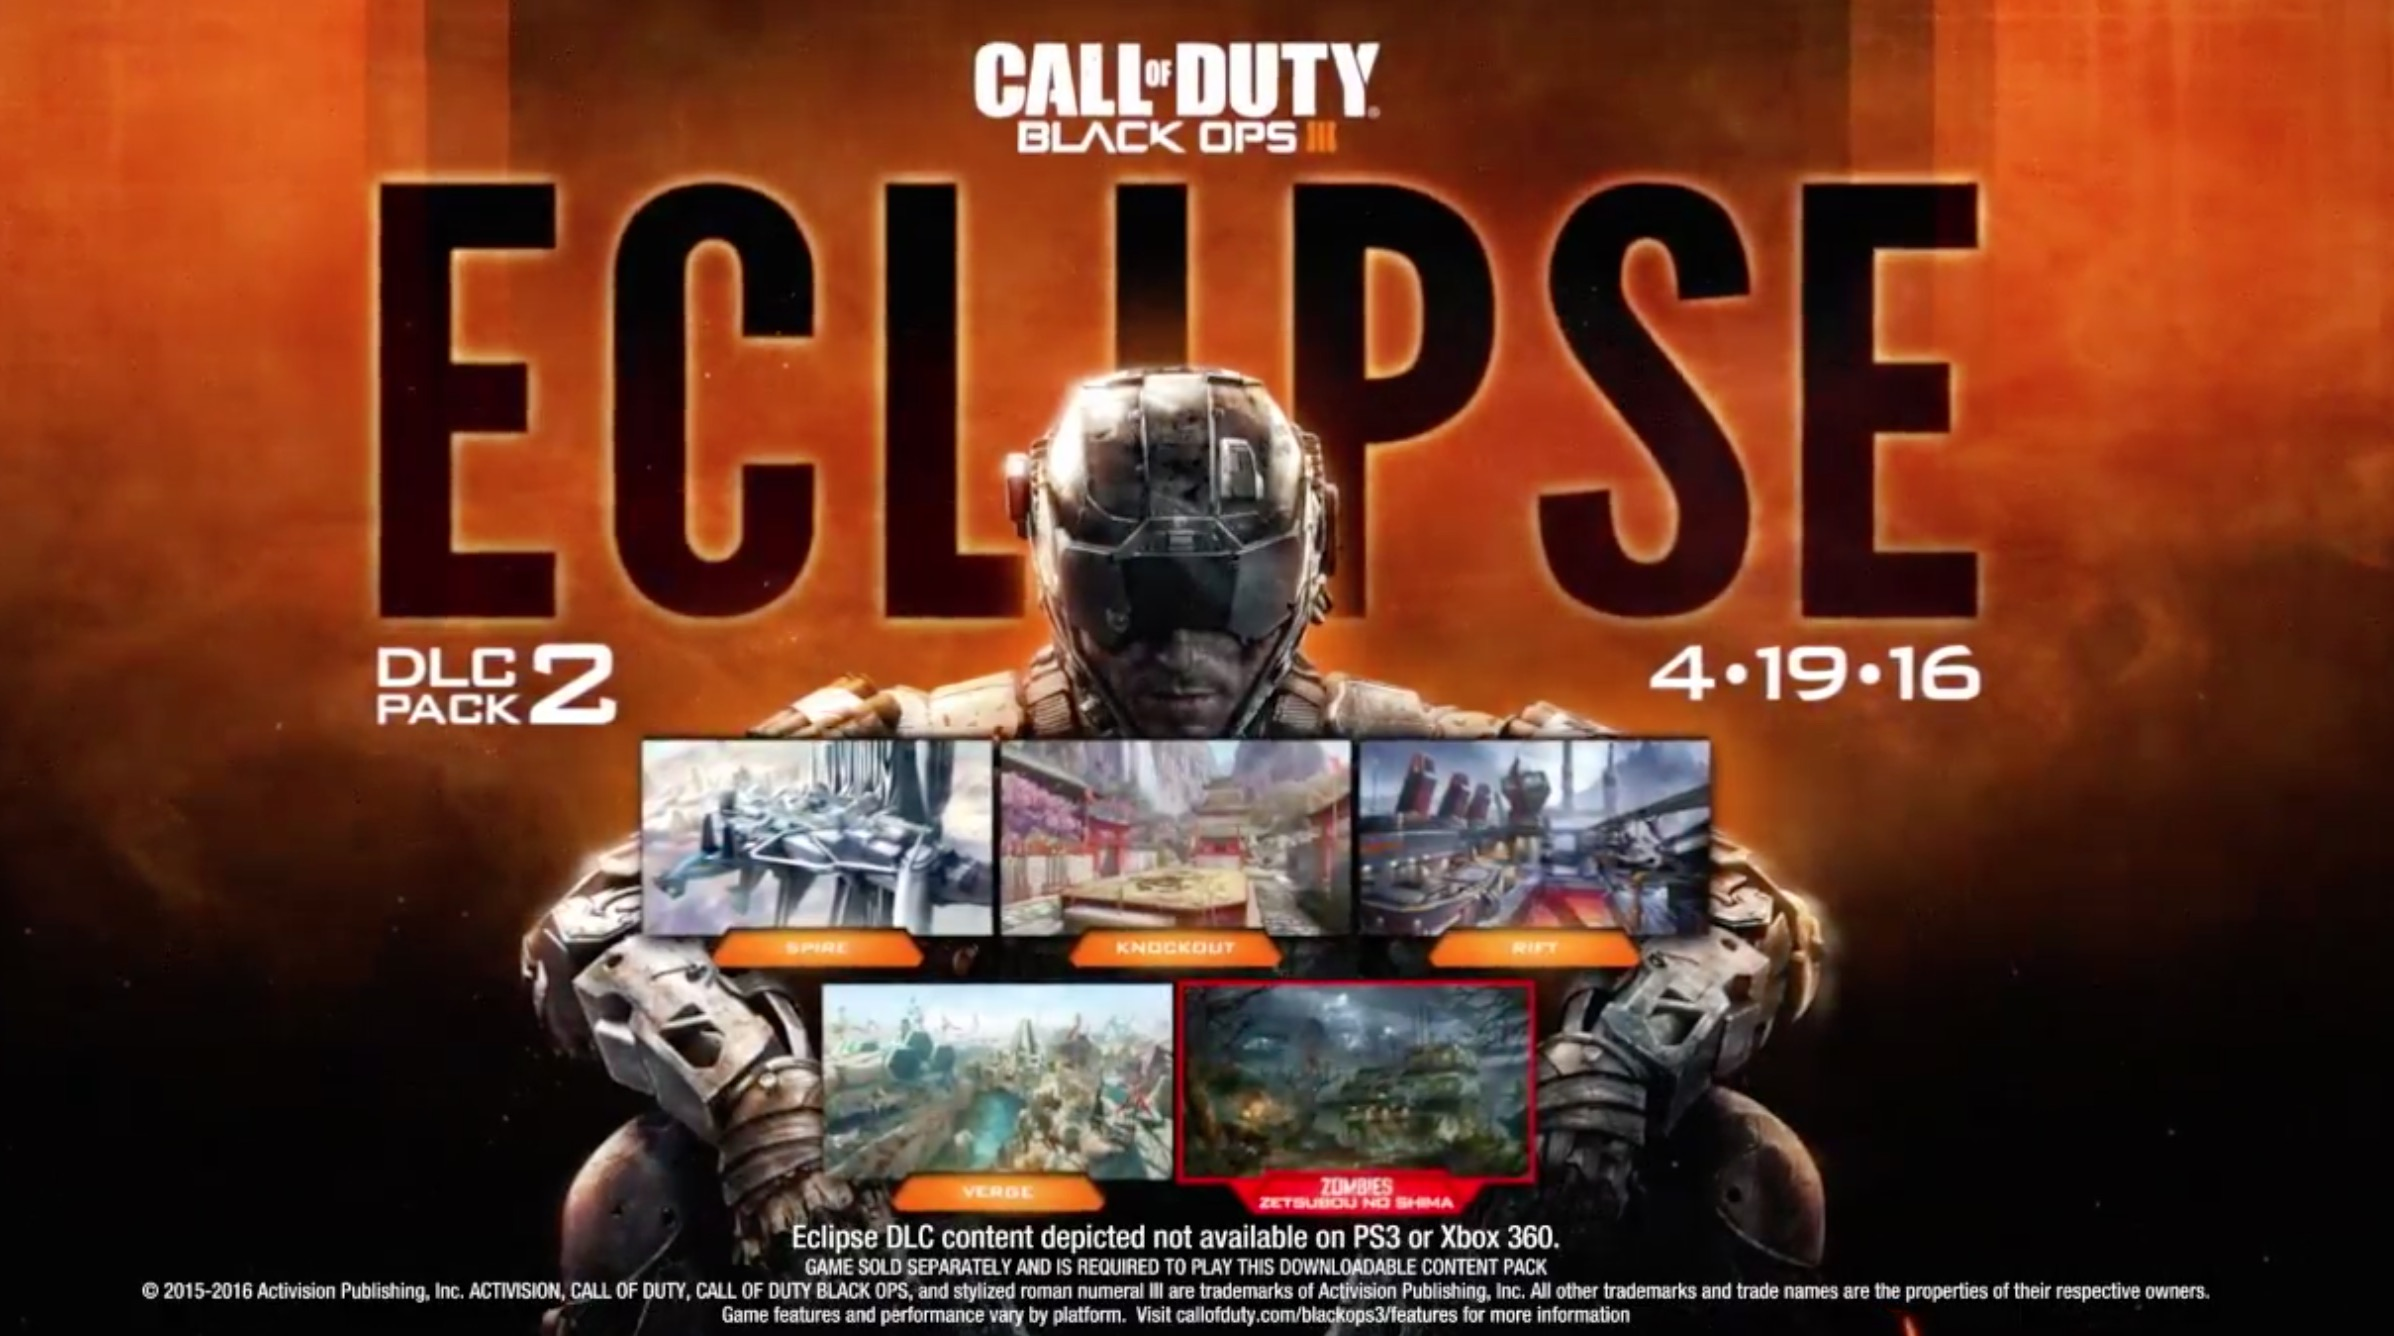 Eclipse Black Ops 3 DLC 2 Release Date Details, Review & Maps on black ops first strike maps, black ops multiplayer mods pc, modern warfare dlc maps, black ops 1 maps, black ops 3 multiplayer, black ops add-on maps, black ops 3 dlc maps, black ops stadium, black ops origins map layout, black ops 1 cheats for xbox 360, cod black ops rezurrection maps, gta 5 dlc maps, cod dlc maps, black ops vengeance, black ops dlc map names, black ops2 maps, black ops dlc maps list, call of duty black ops dlc maps, black ops ii dlc, black ops 3 release,